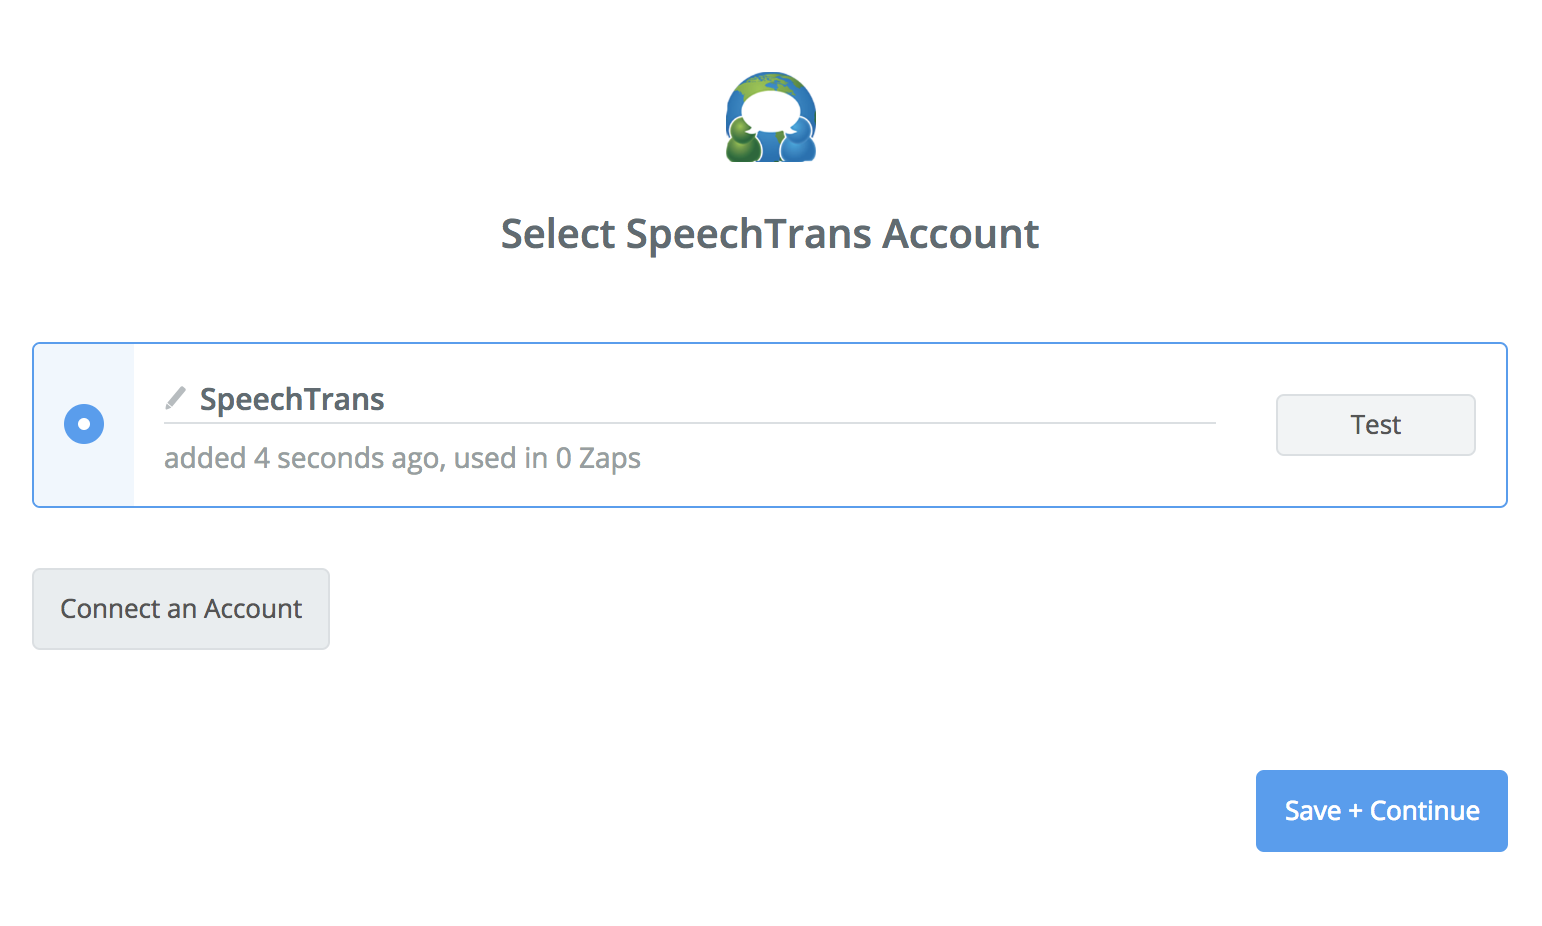 SpeechTrans connection successfull